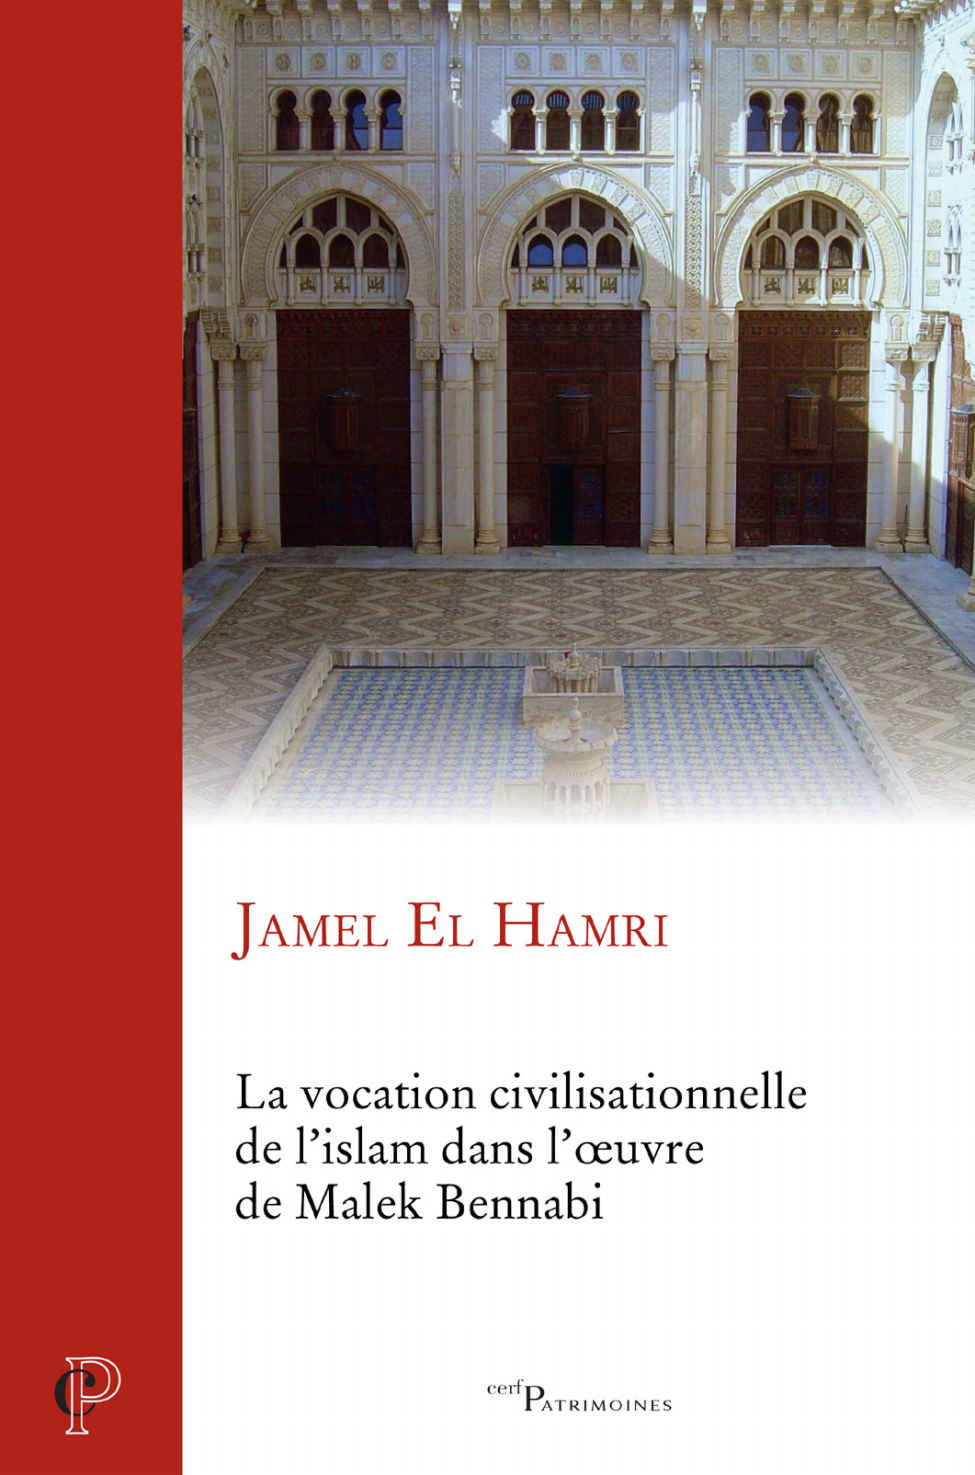 Malek Bennabi,  De la Vocation civilisationnelle de l'islam.